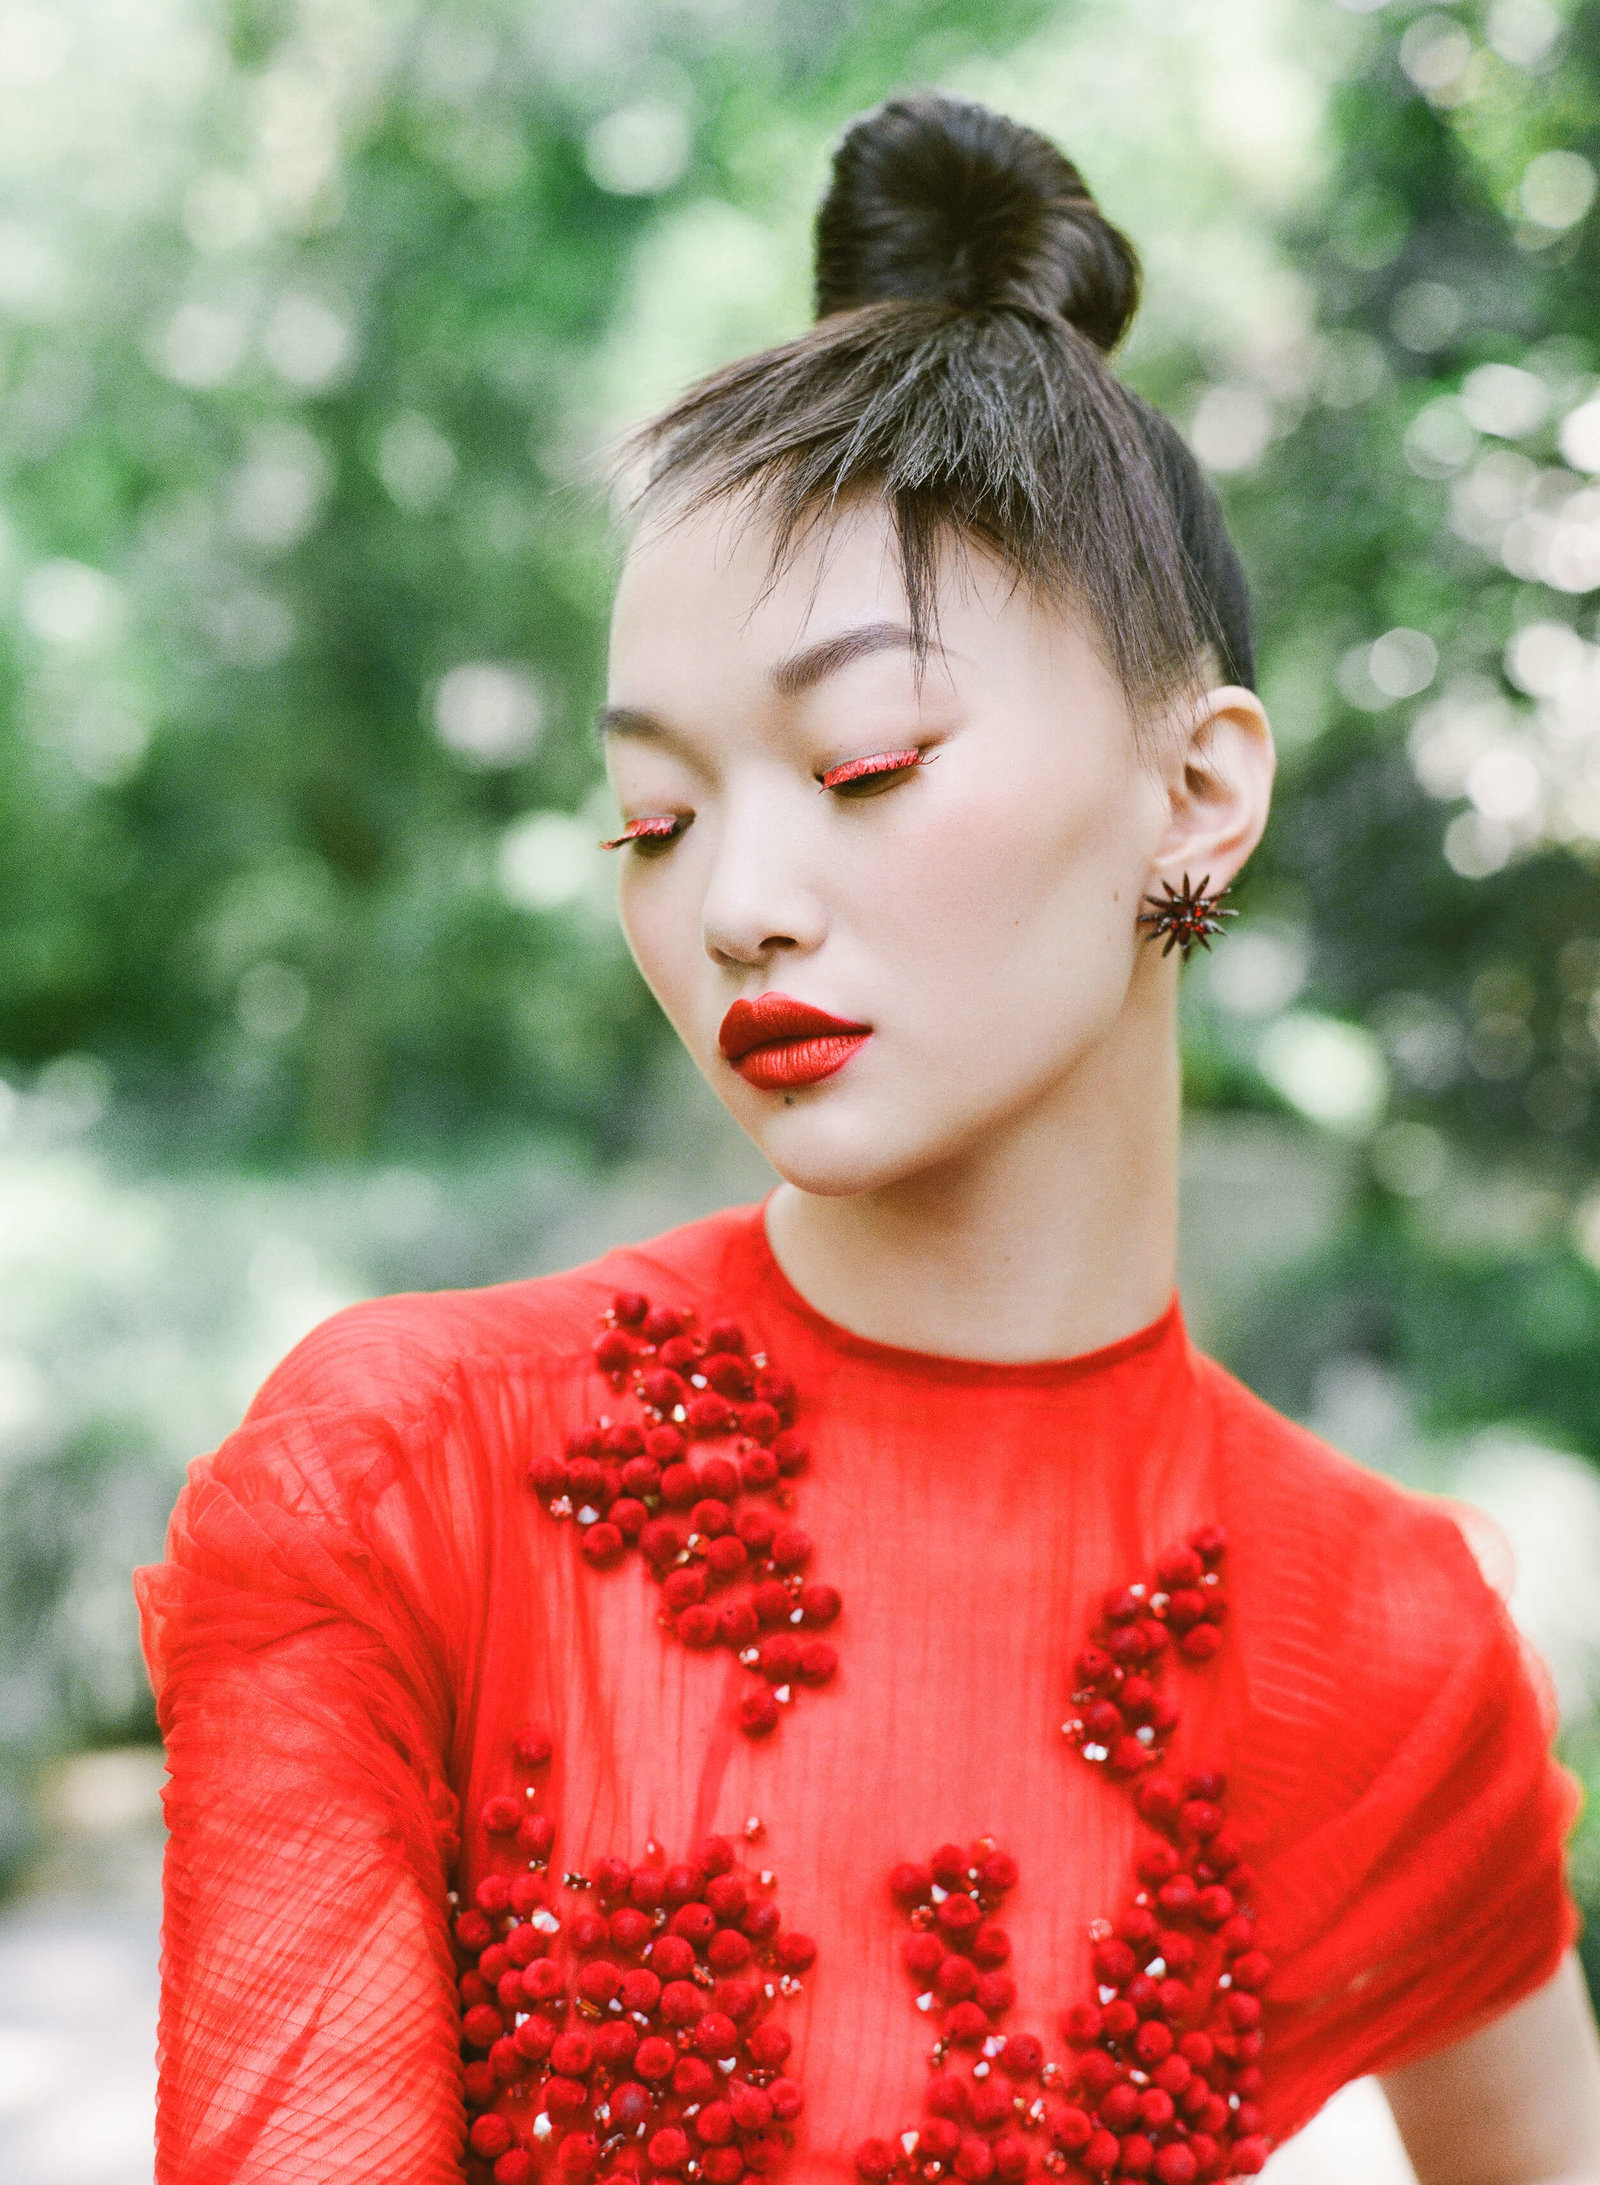 2-KTMerry-HarpersBazaar-PhuongMy-haute-couture-red